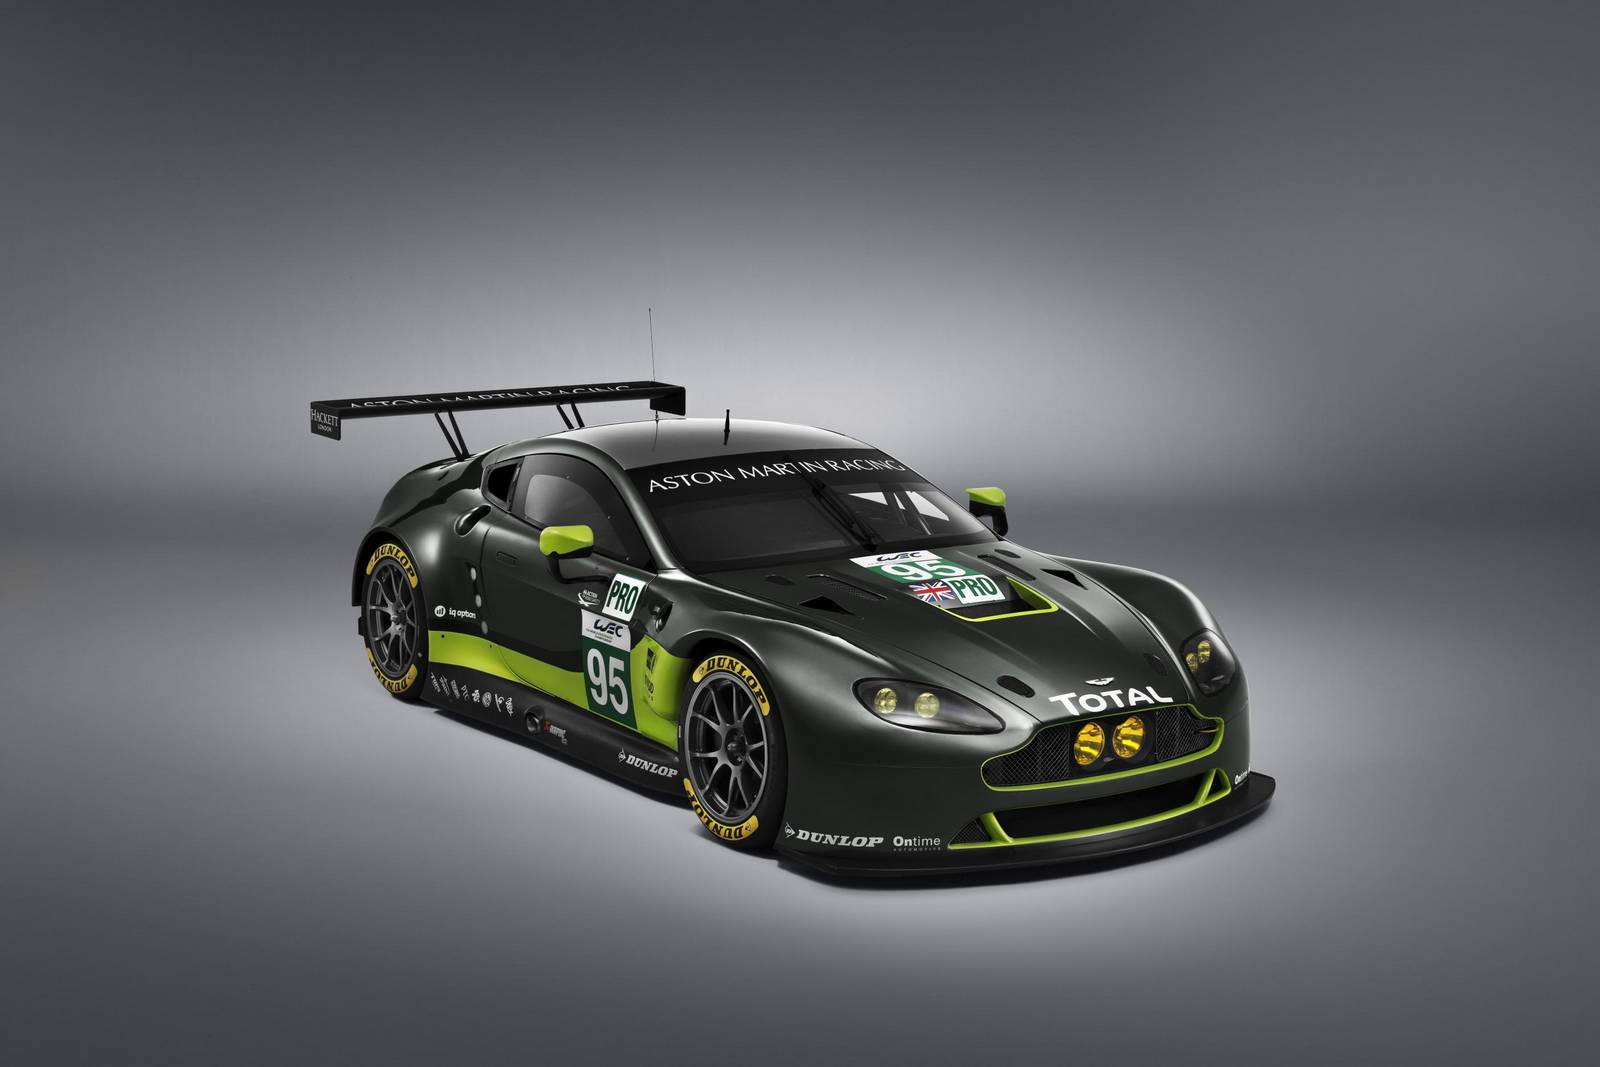 Official 2016 Aston Martin V8 Vantage Gte And V12 Vantage Gt3 Gtspirit